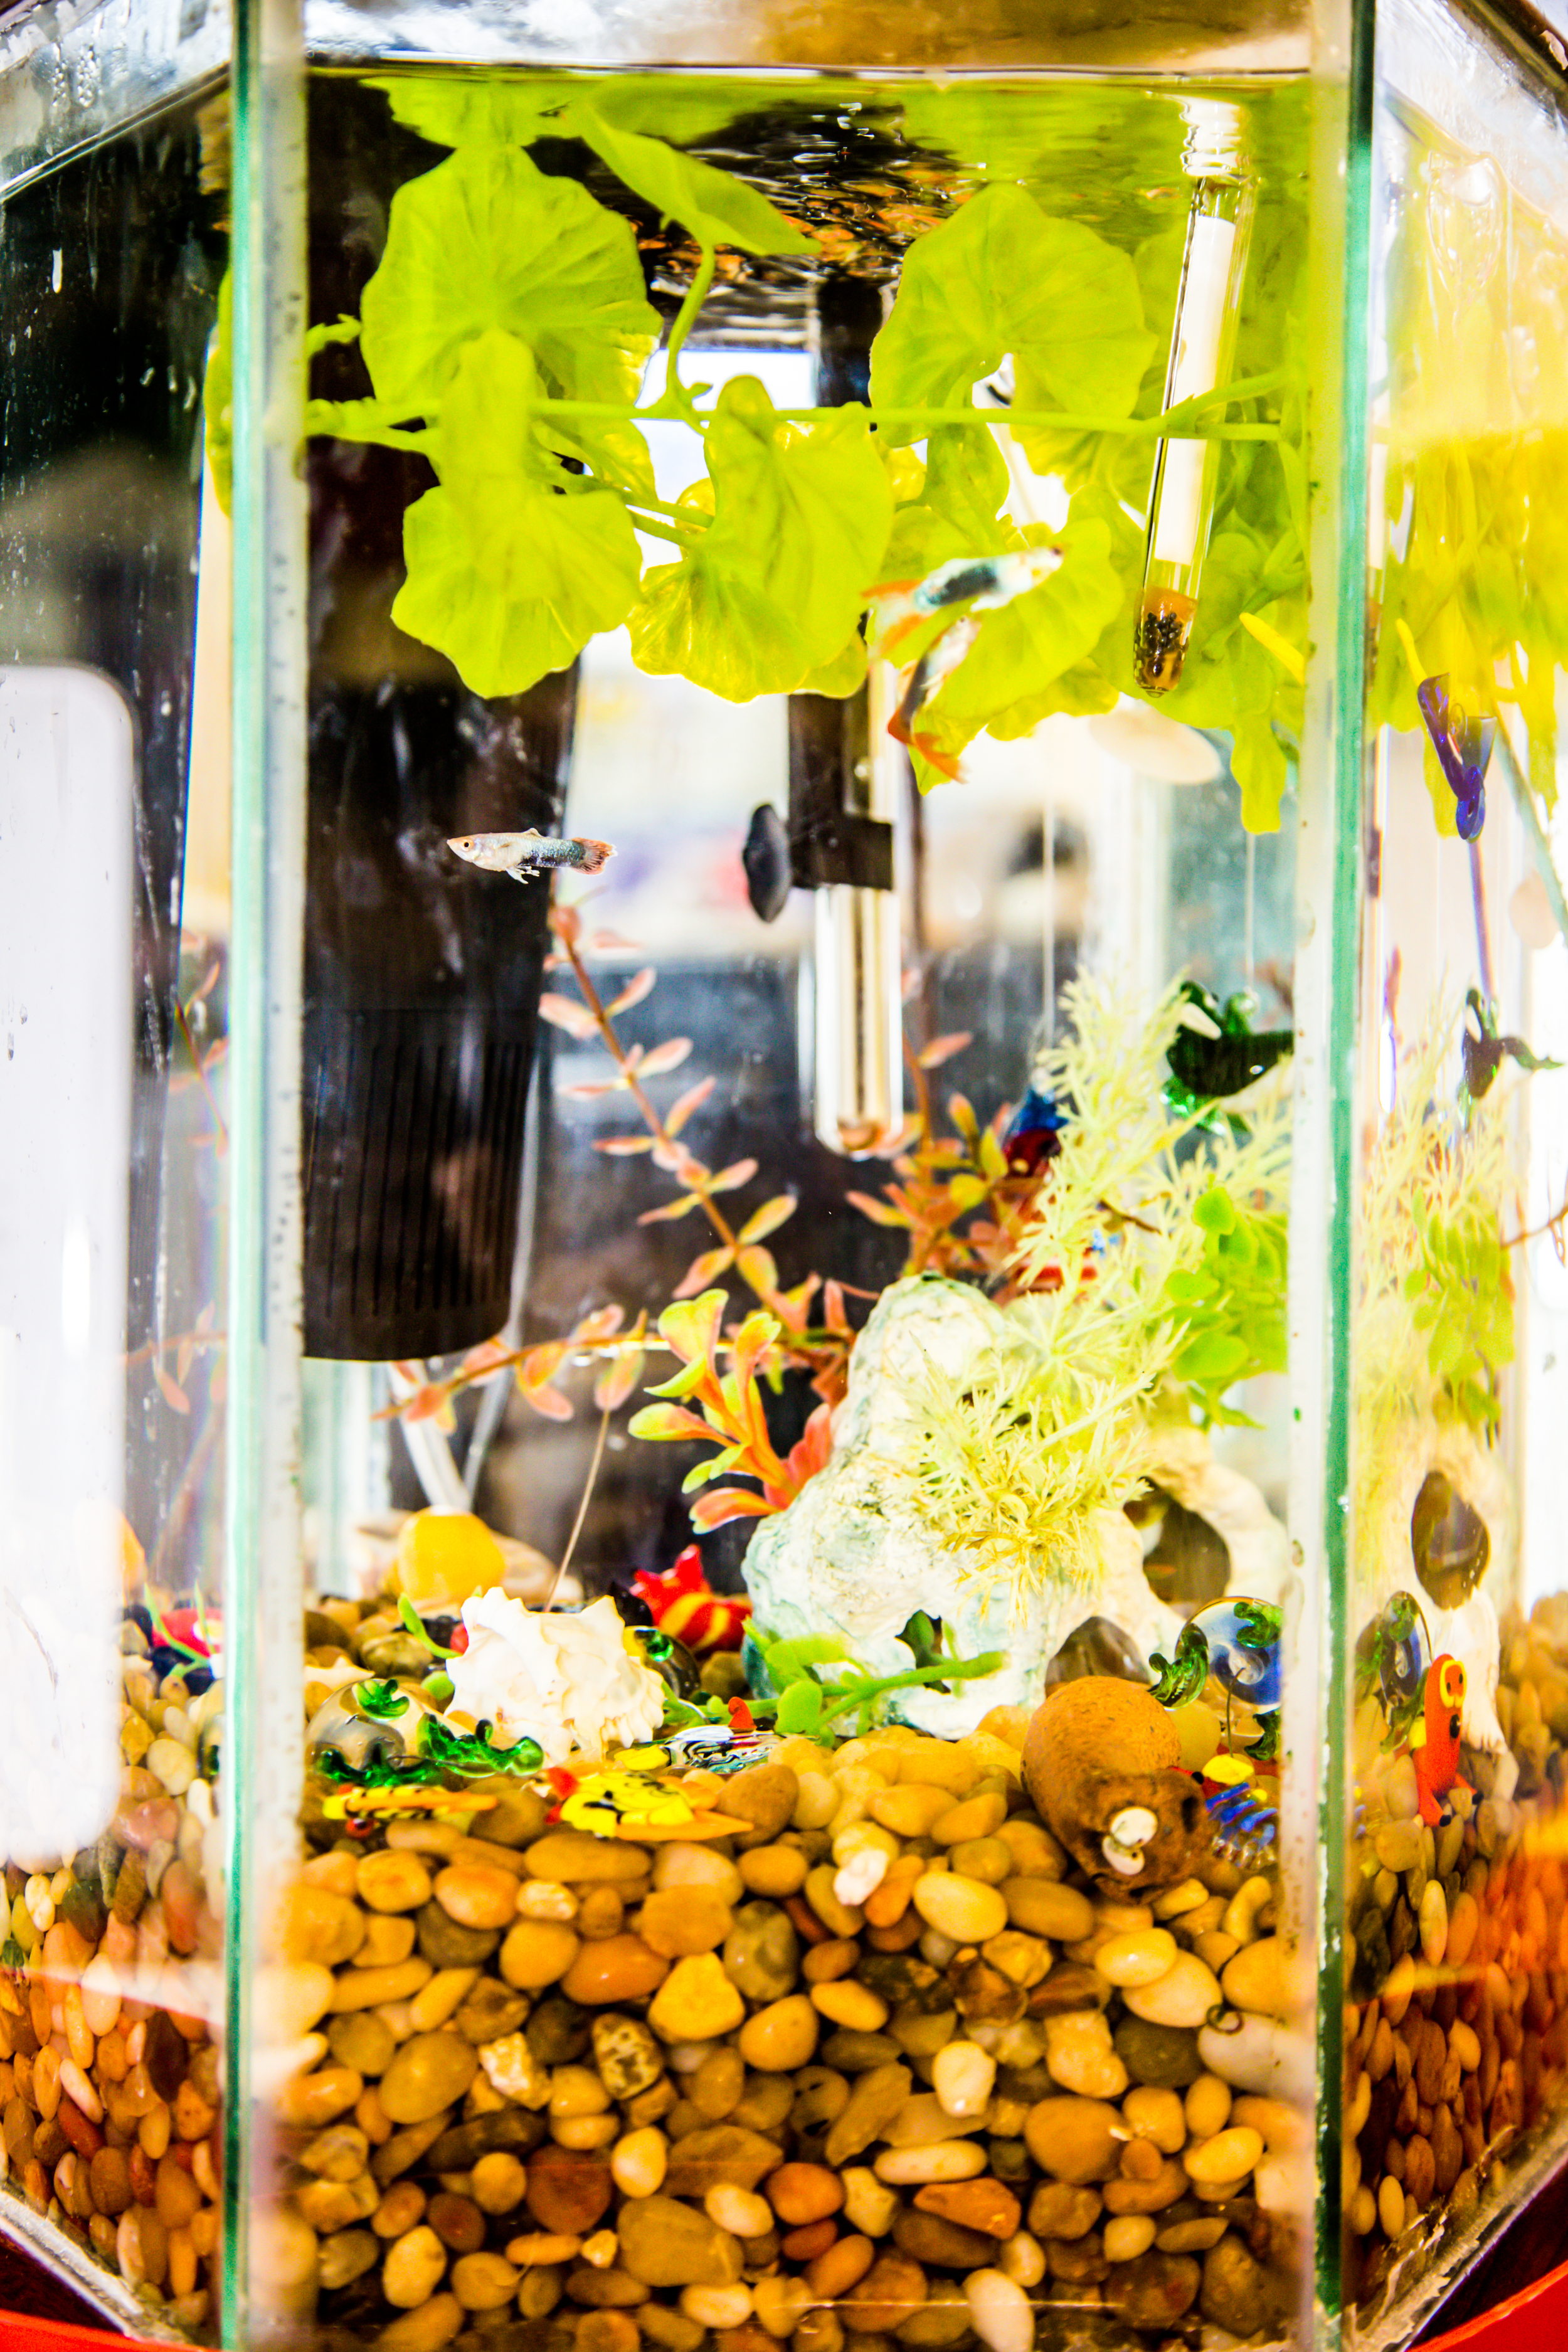 The science center hosts a colorful fish tank where children help with daily feeding and have a quiet moment of observation.